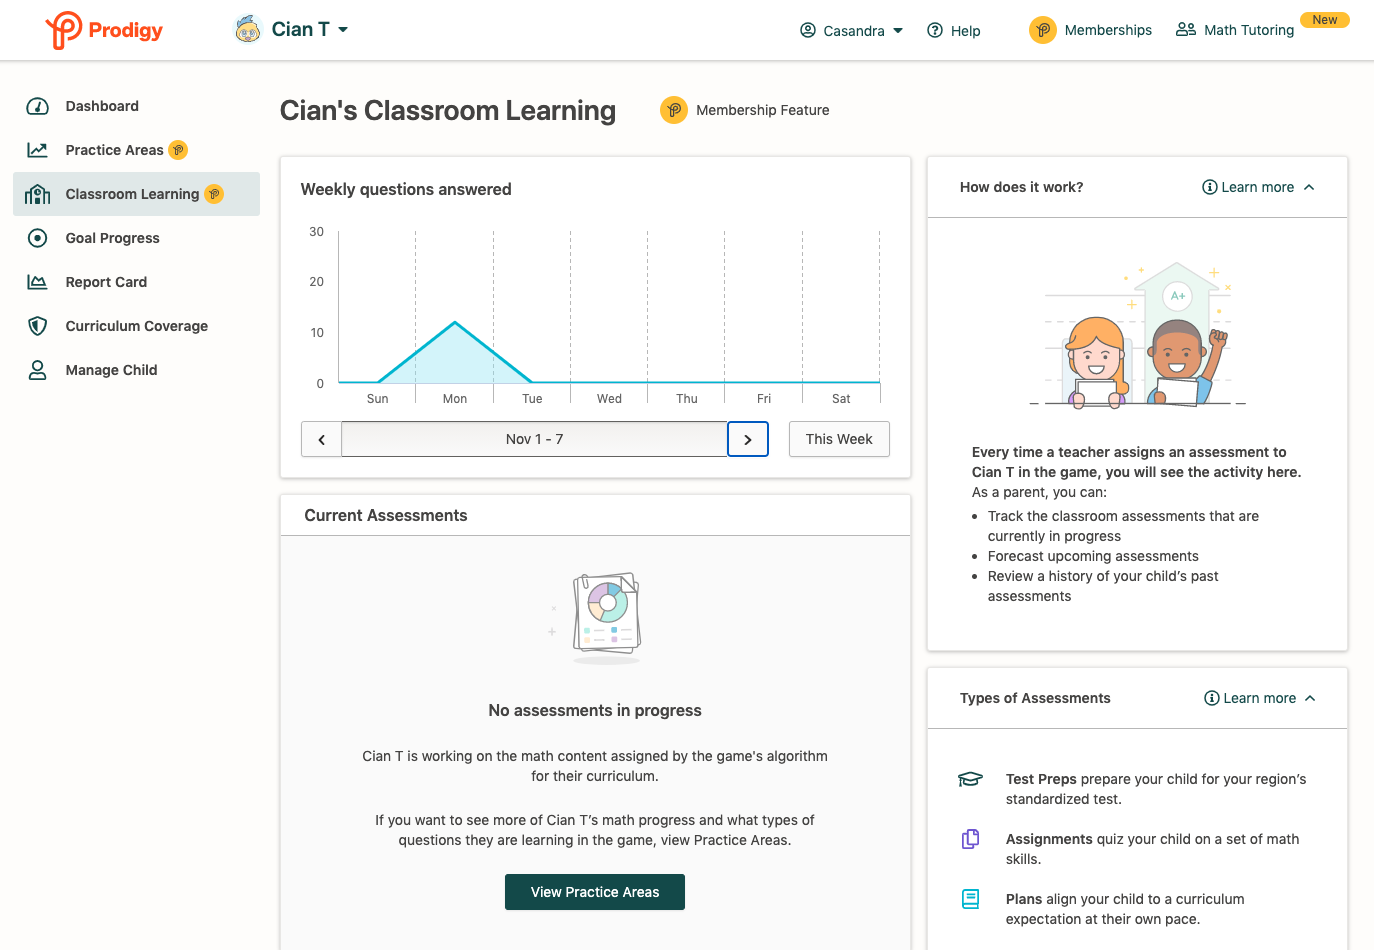 Screenshot of Prodigy's Classroom Learning feature in the parent dashboard.